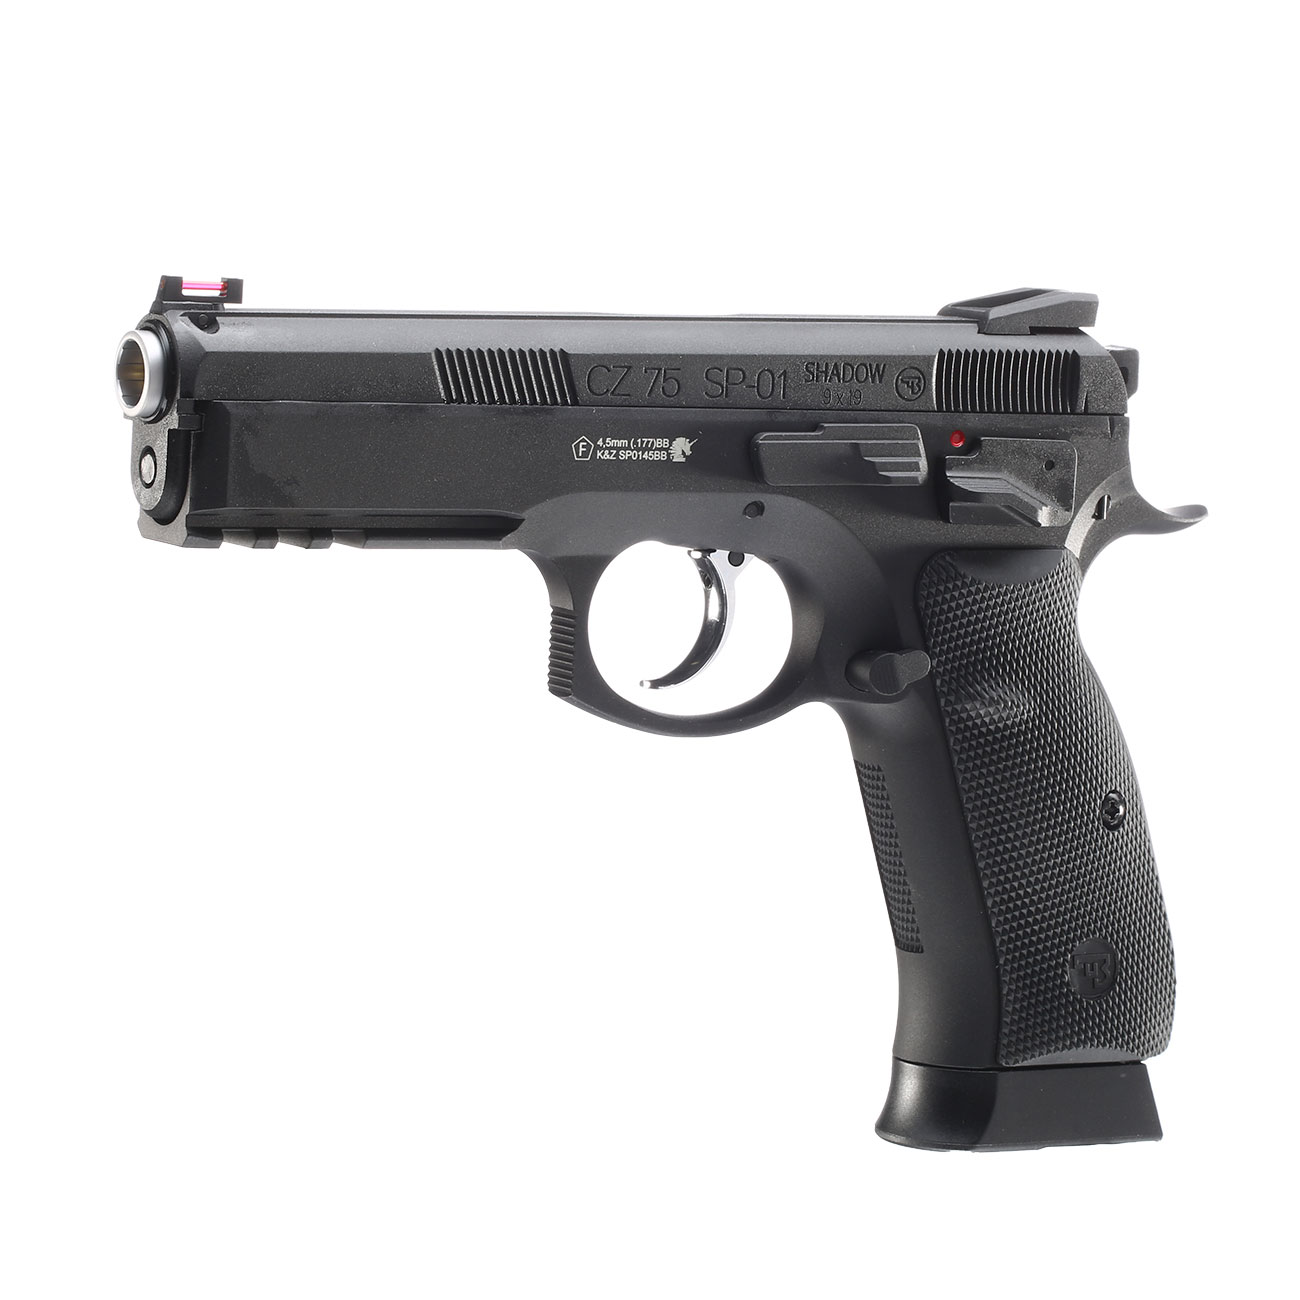 ASG CZ 75 SP-01 Shadow CO2-Luftpistole Kal. 4,5mm BB schwarz Vollmetall Blowback 1